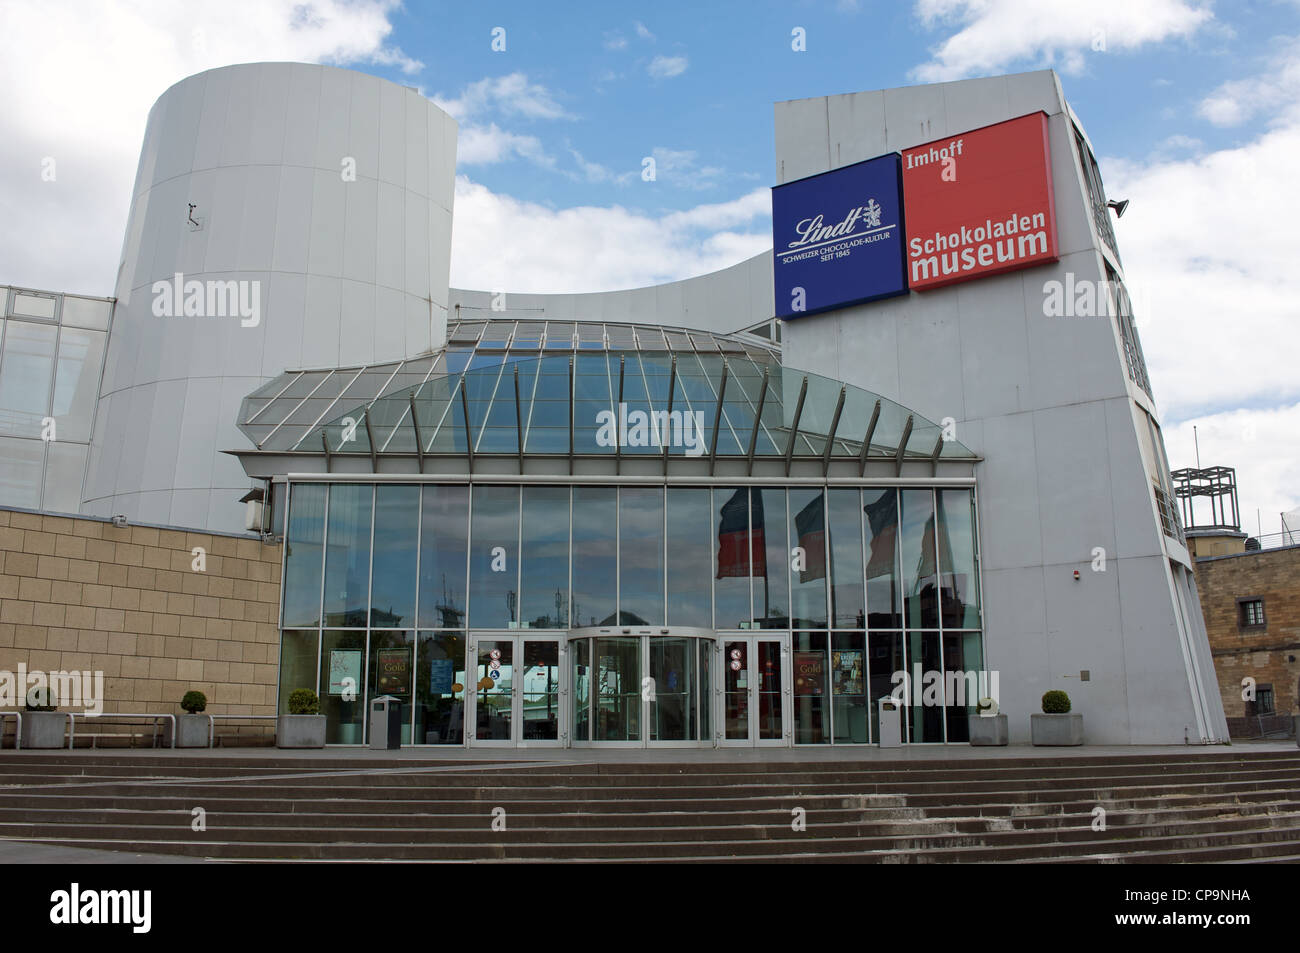 Chocolate Museum Cologne Germany Stock Photo 48157686 Alamy